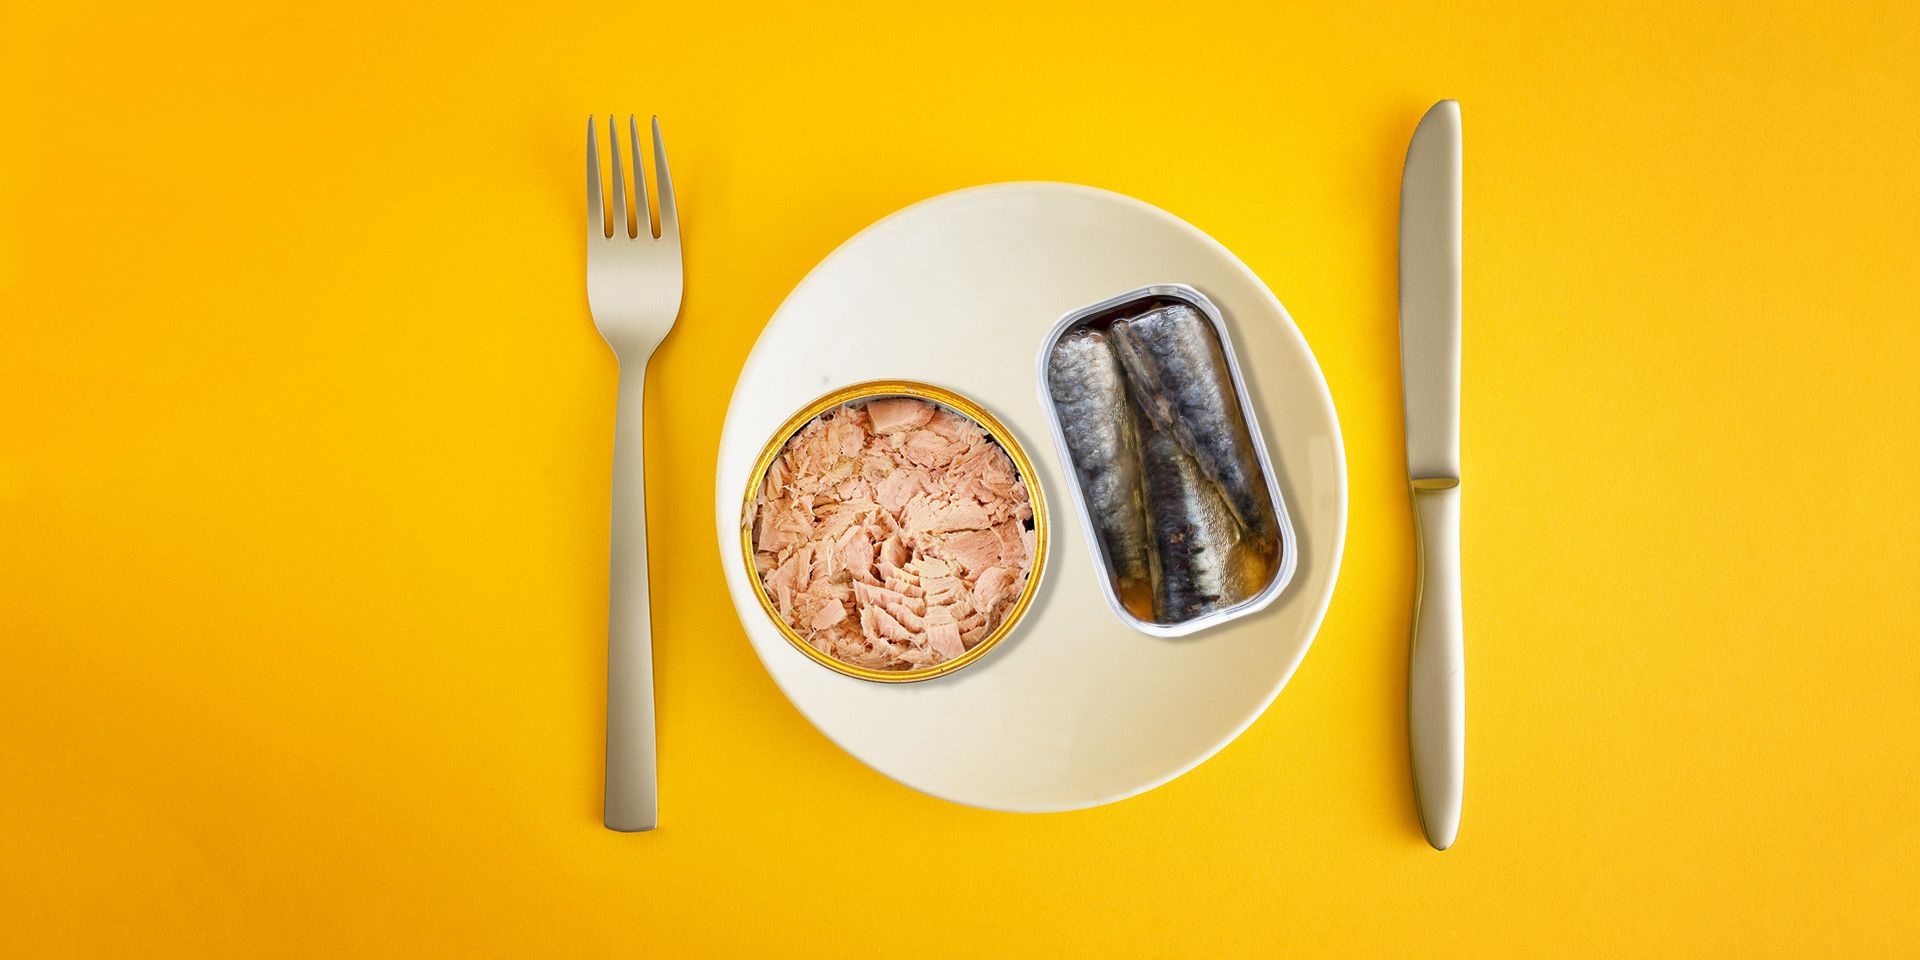 How to Make an Easy, Not-Boring Lunch With That Can of Tuna in Your Pantry